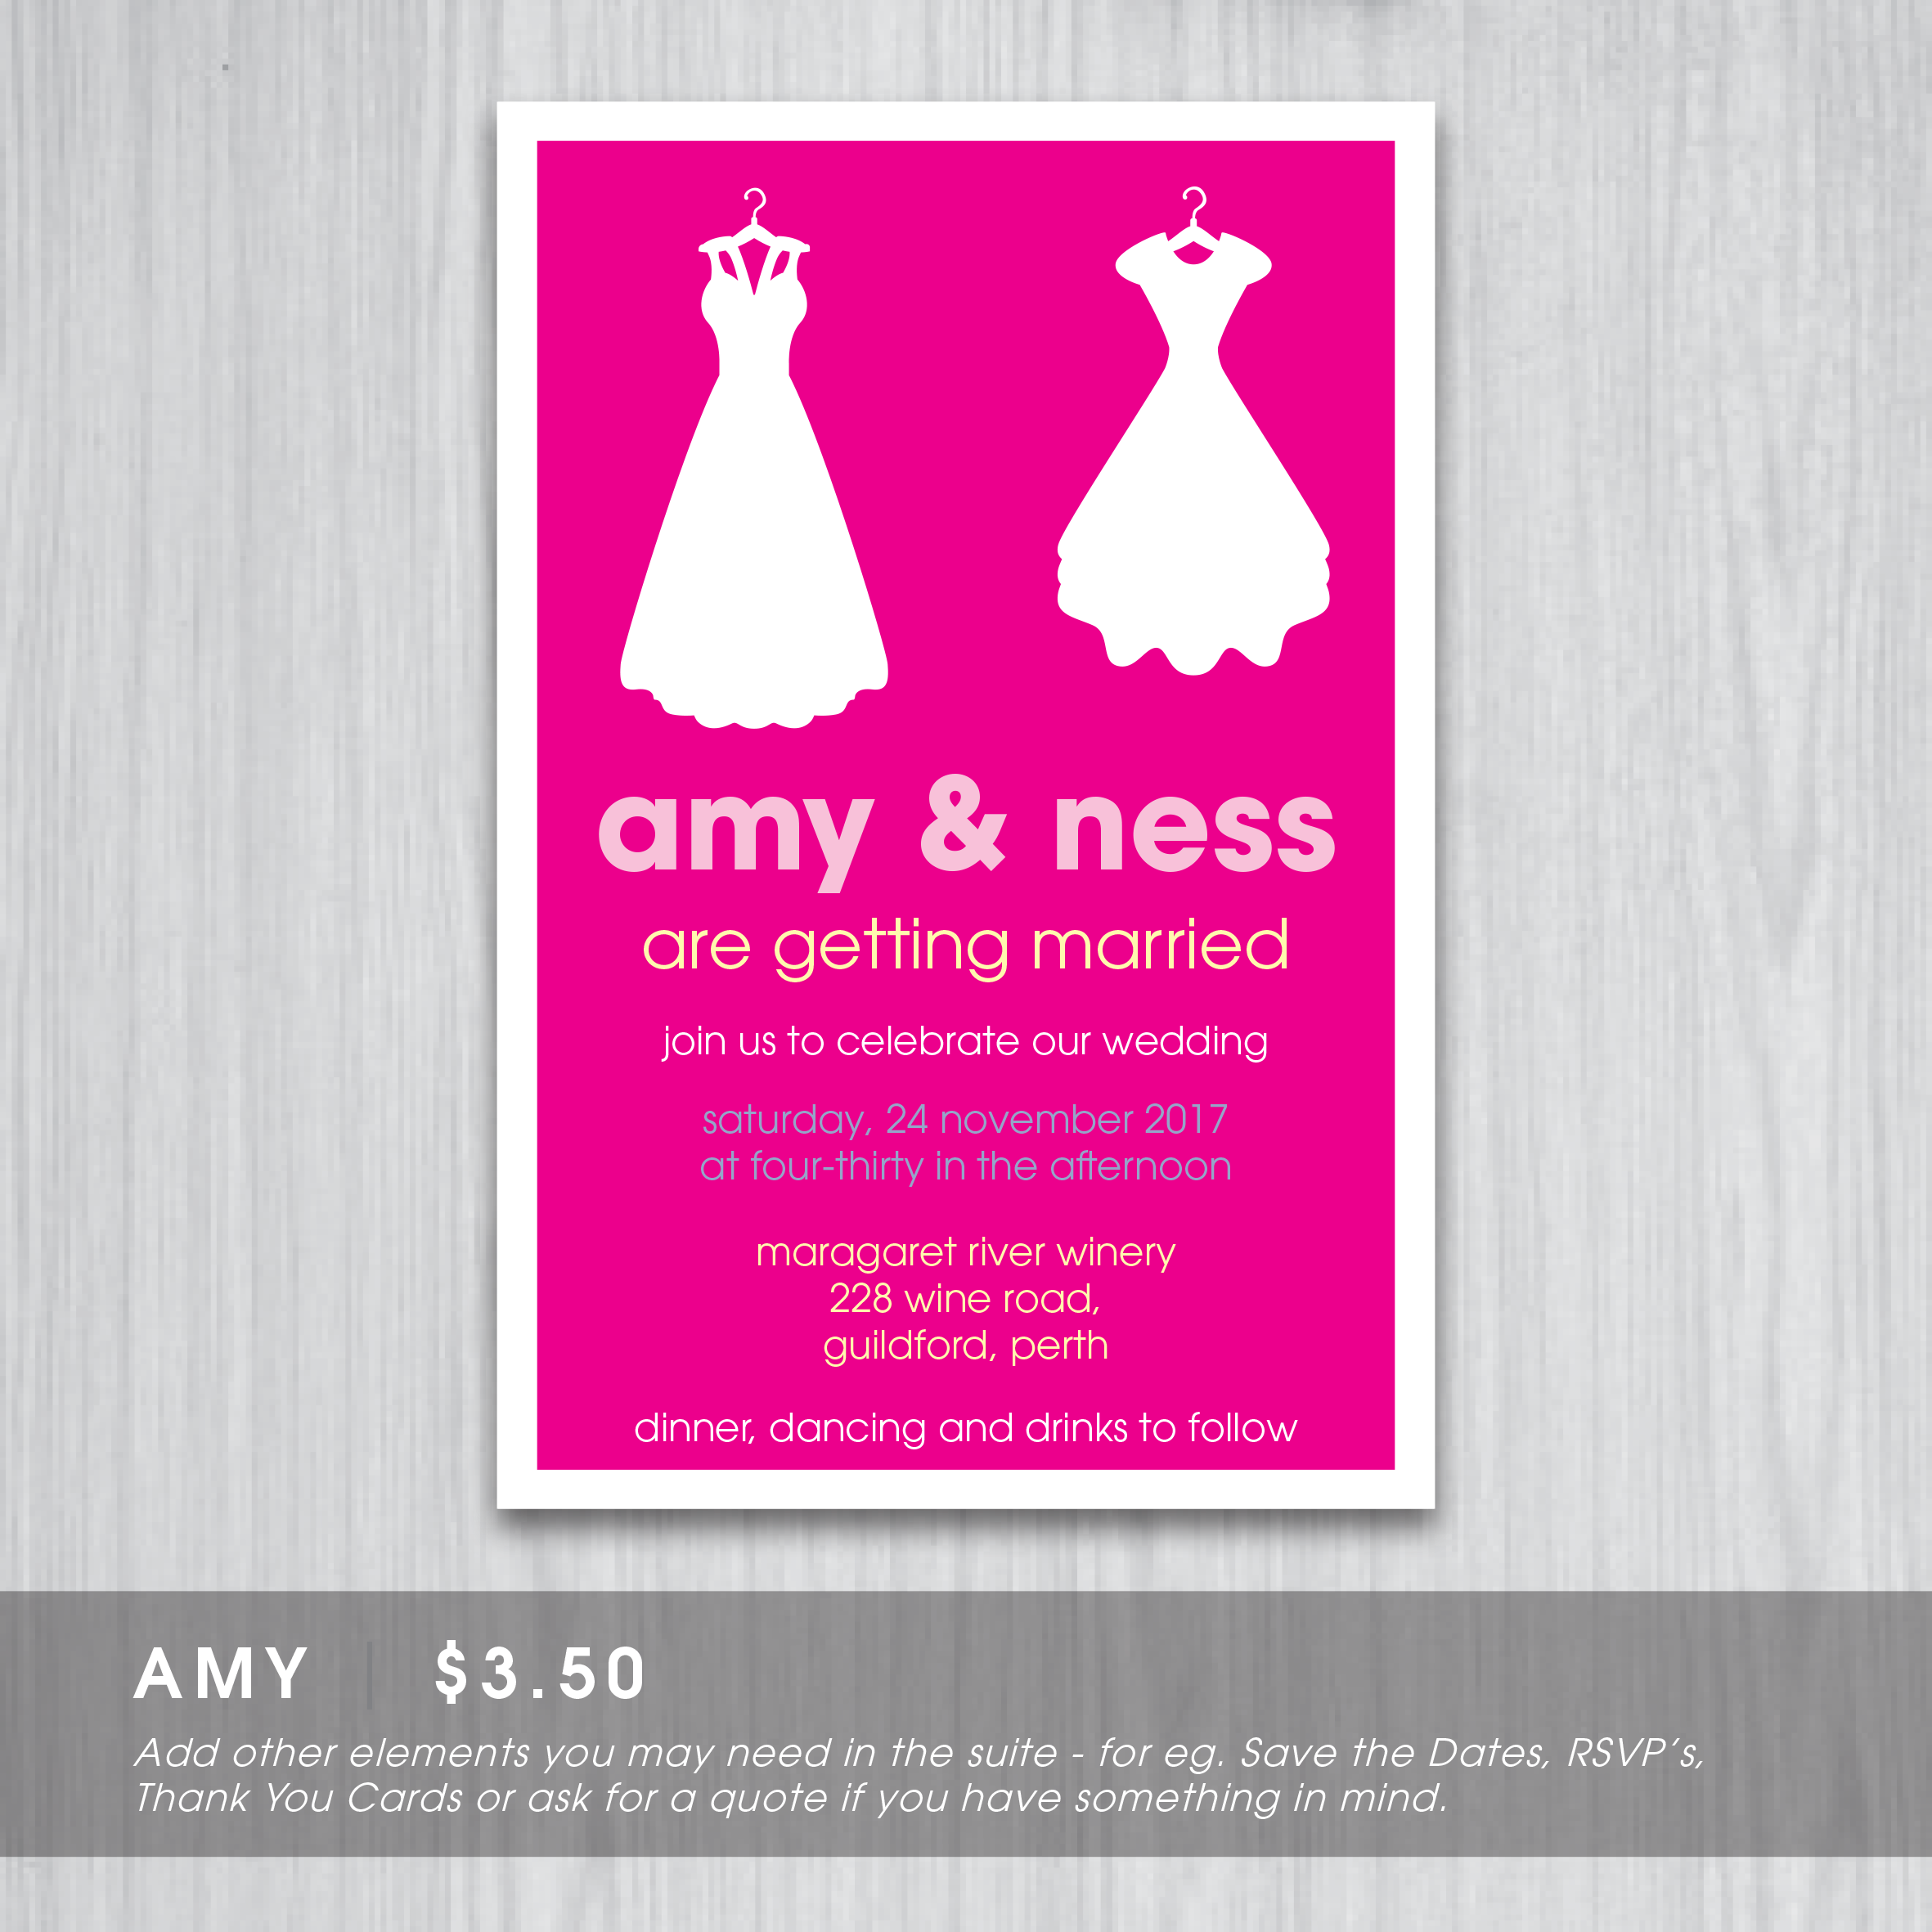 Wedding-Invites-Webpage-layout-3